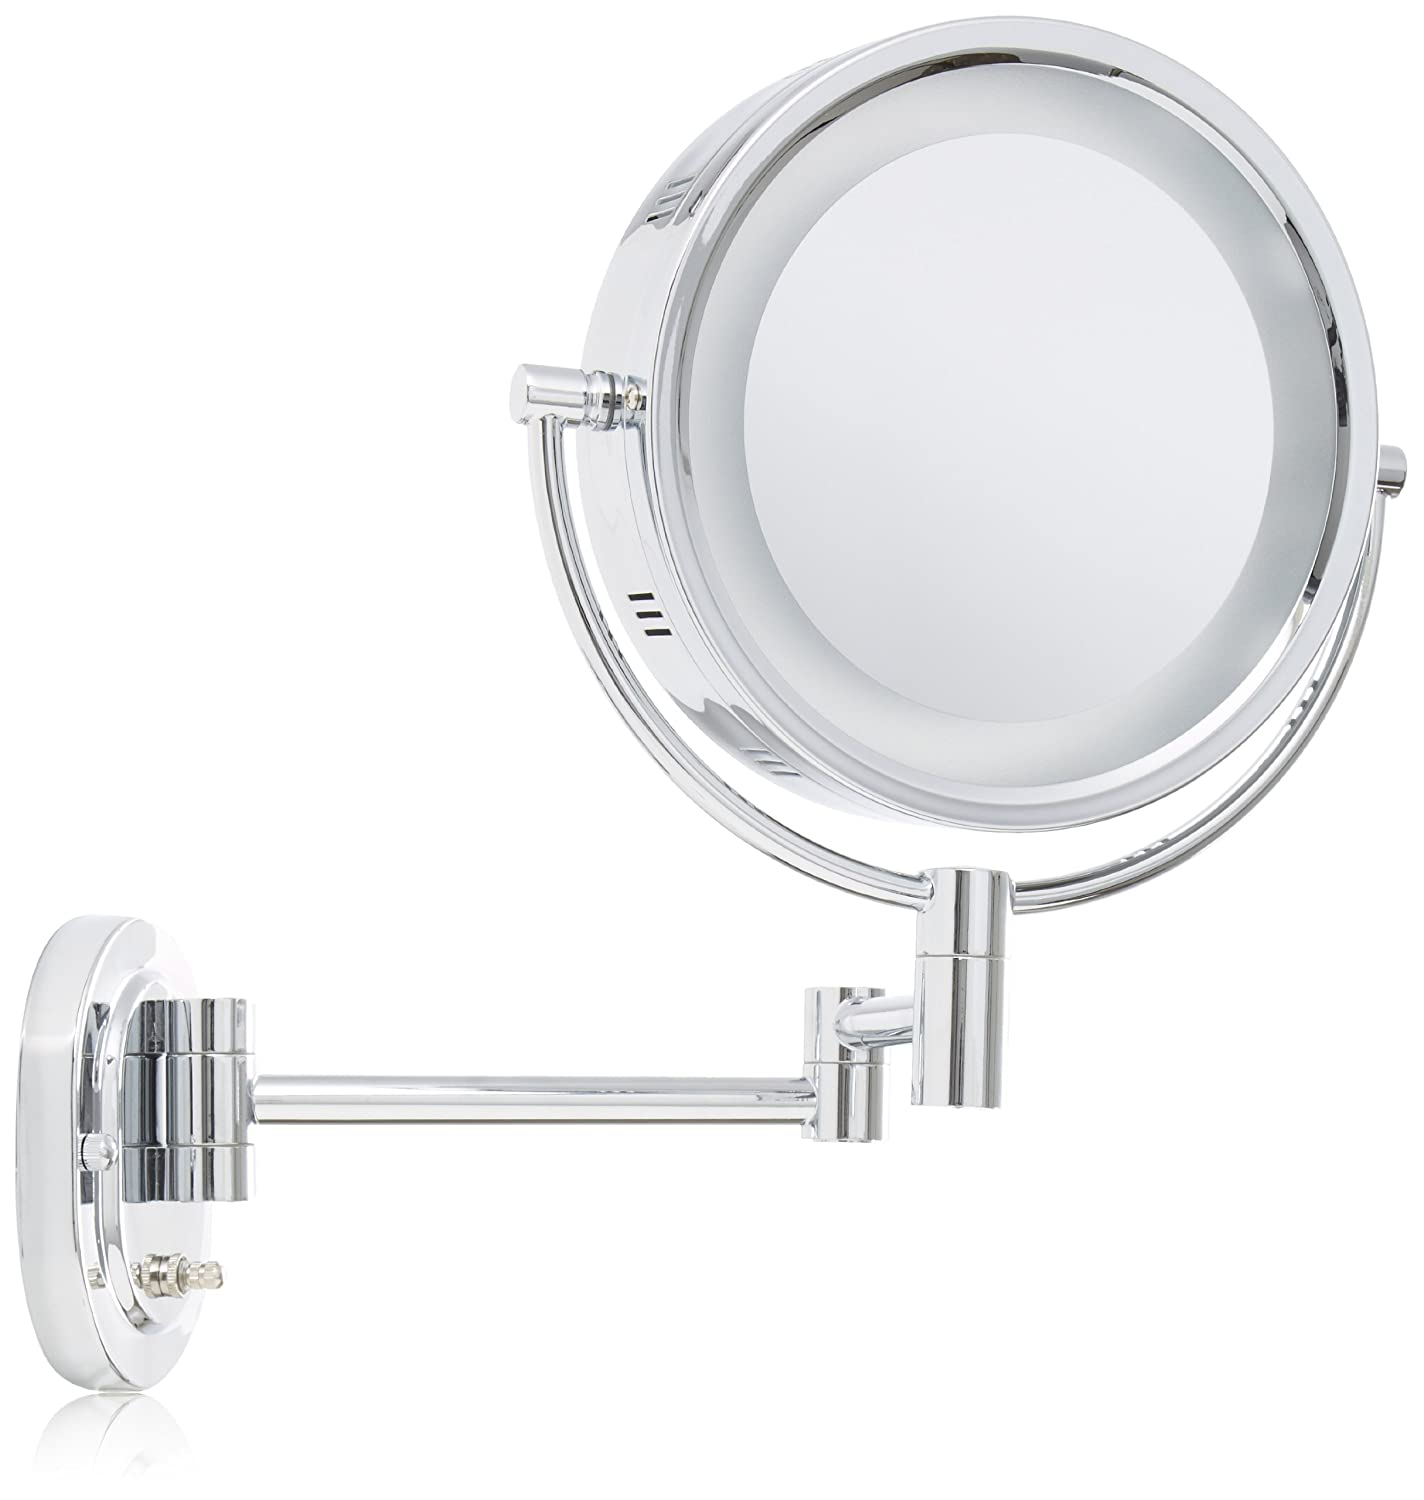 Amazon jerdon hl65c 8 inch lighted wall mount makeup mirror amazon jerdon hl65c 8 inch lighted wall mount makeup mirror with 5x magnification chrome finish personal makeup mirrors beauty mozeypictures